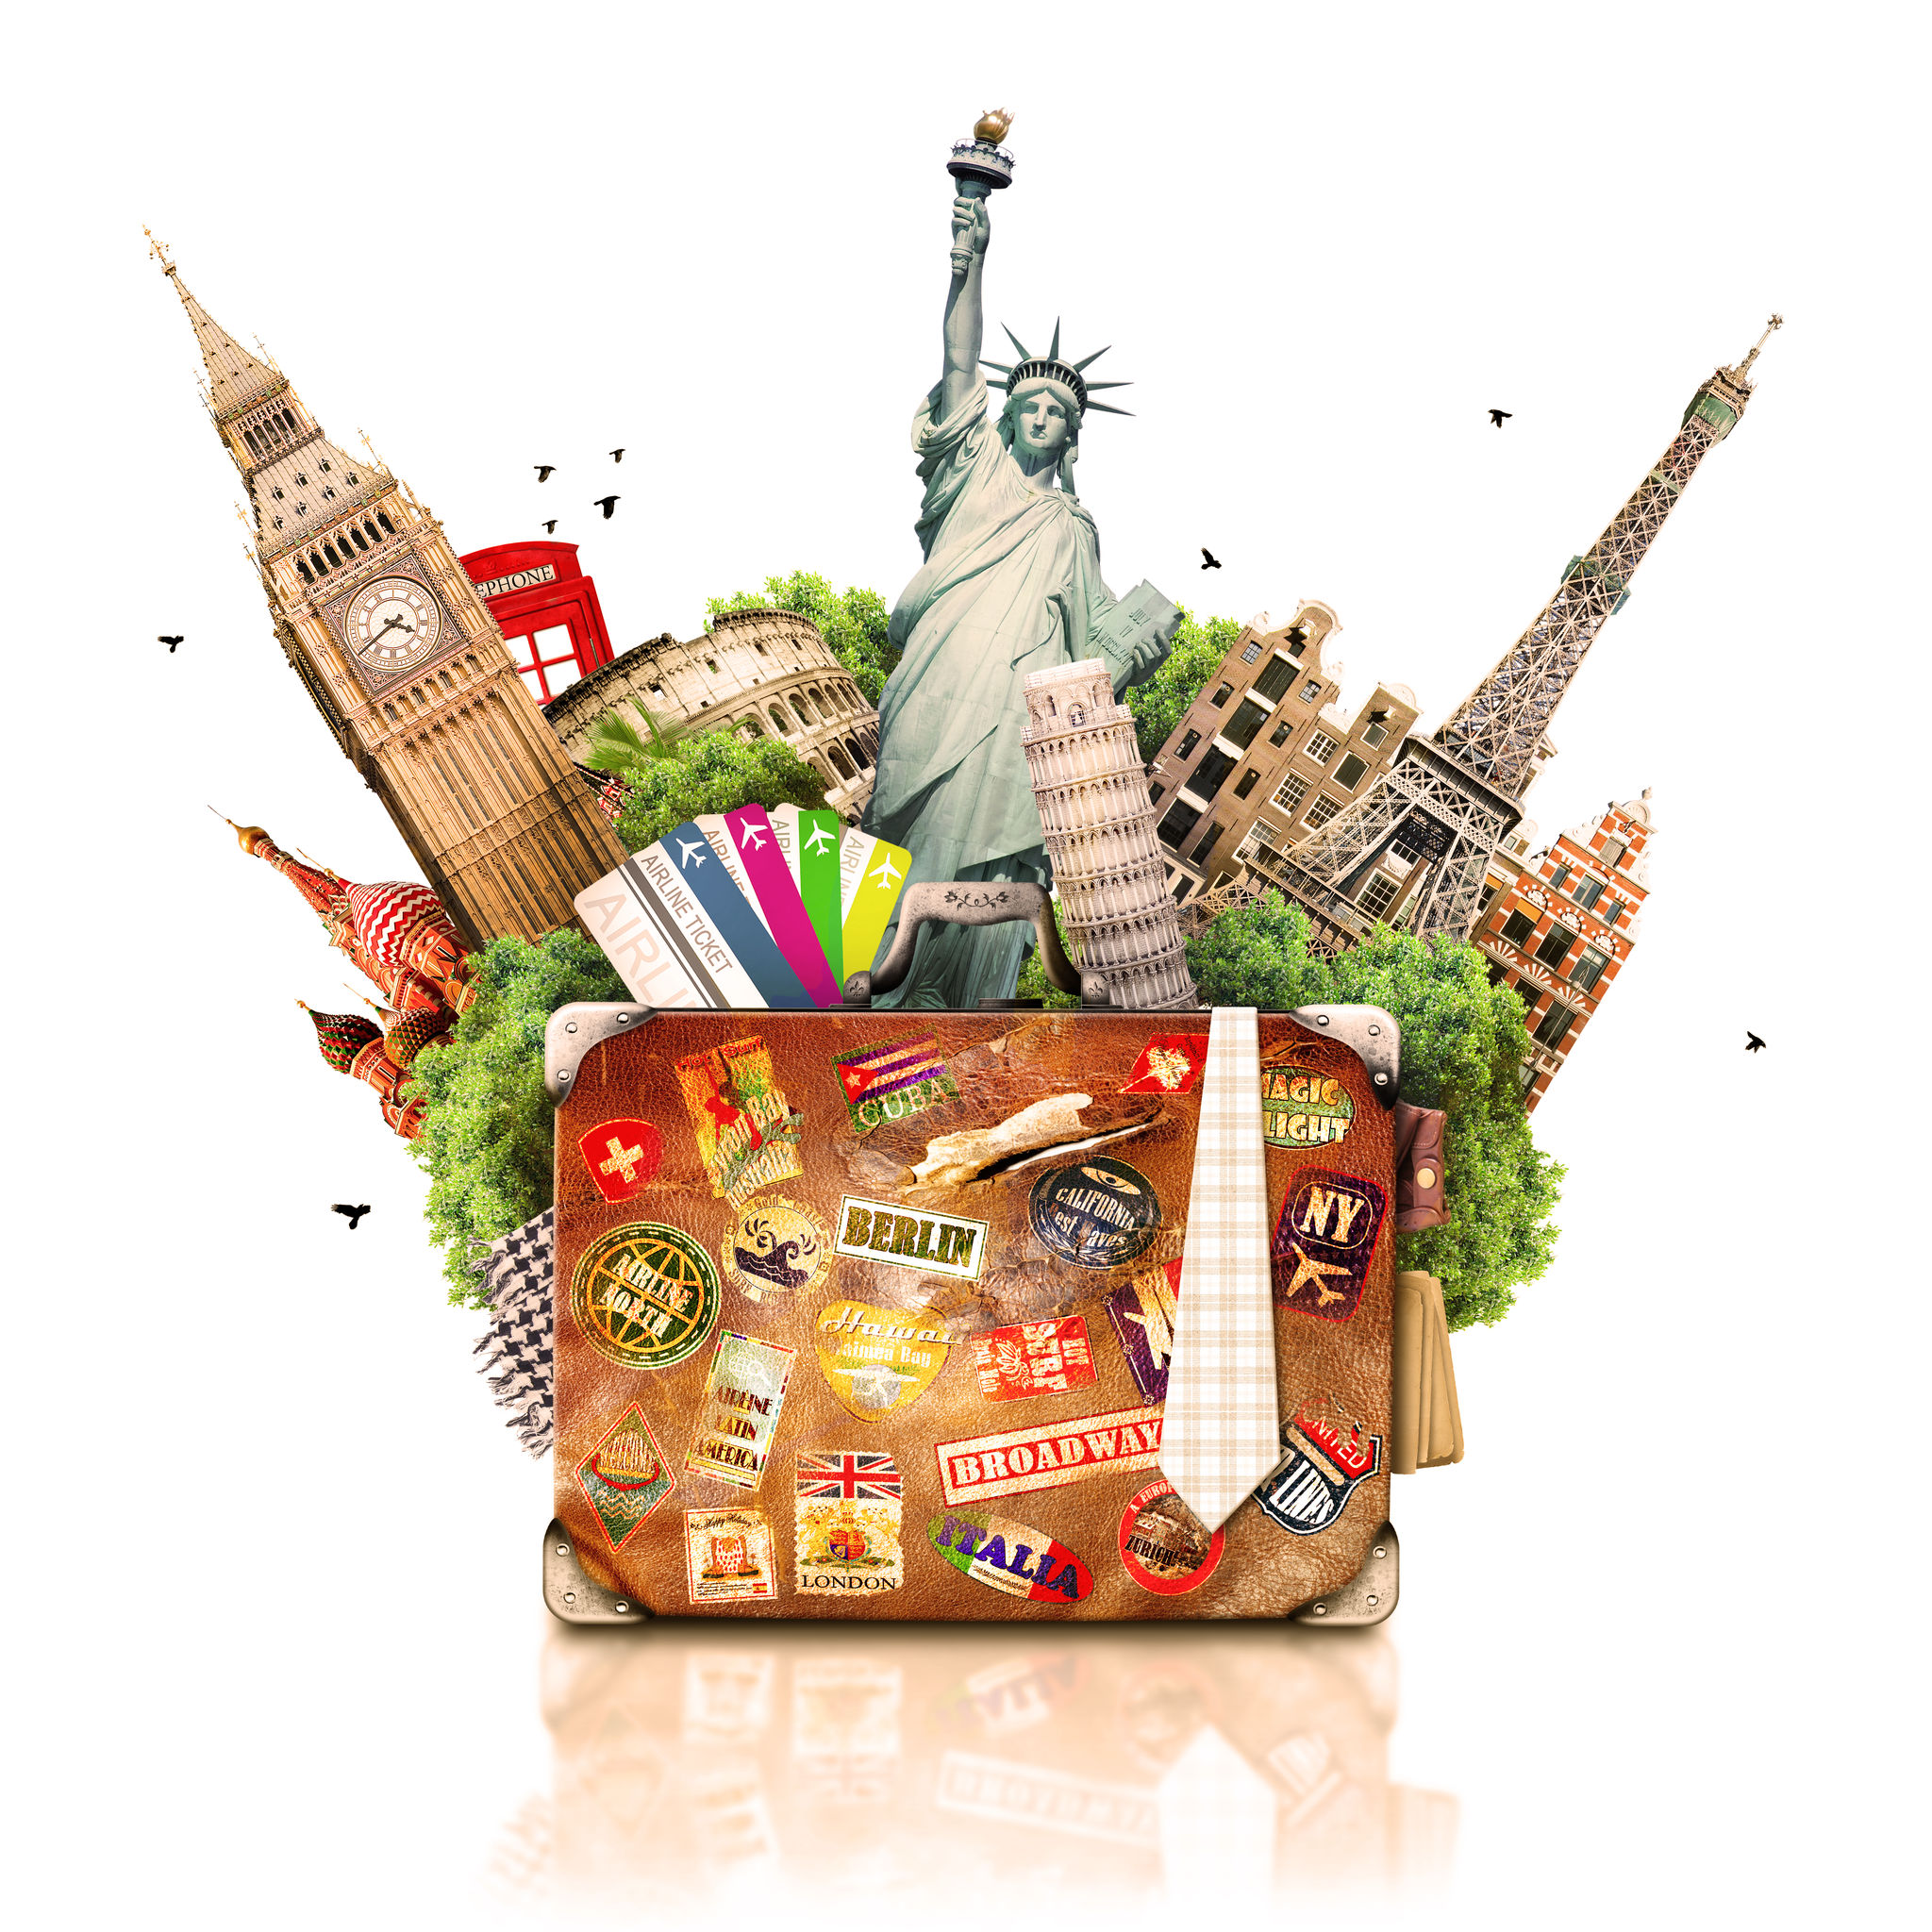 Age Concern Travel Insurance Makes Traveling Worry-Free and Enjoyable